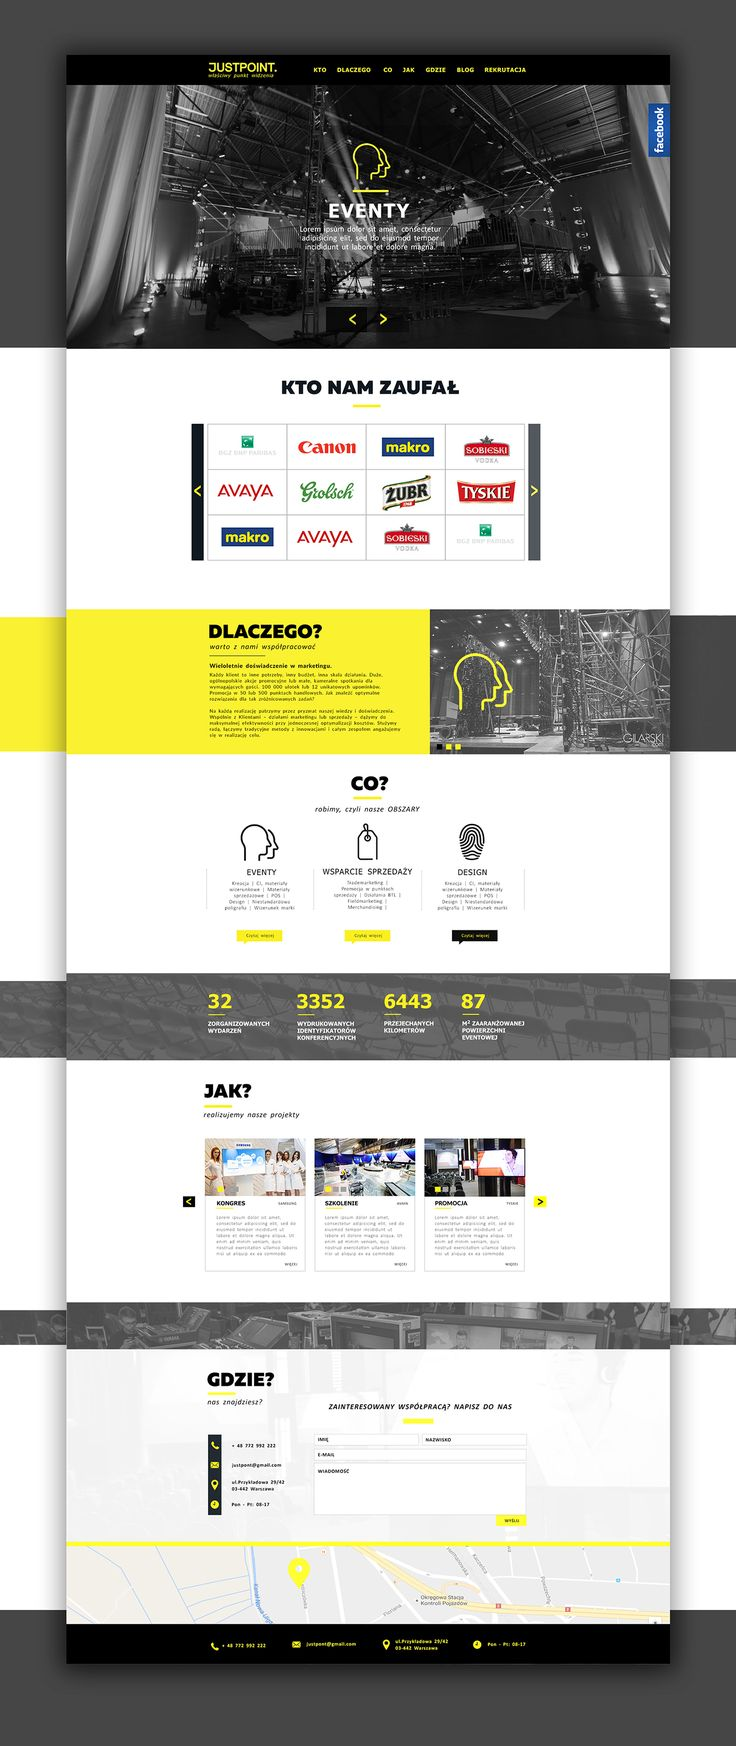 Web design inspiration UI/UX user experience fashion concept Justpoint on Behance